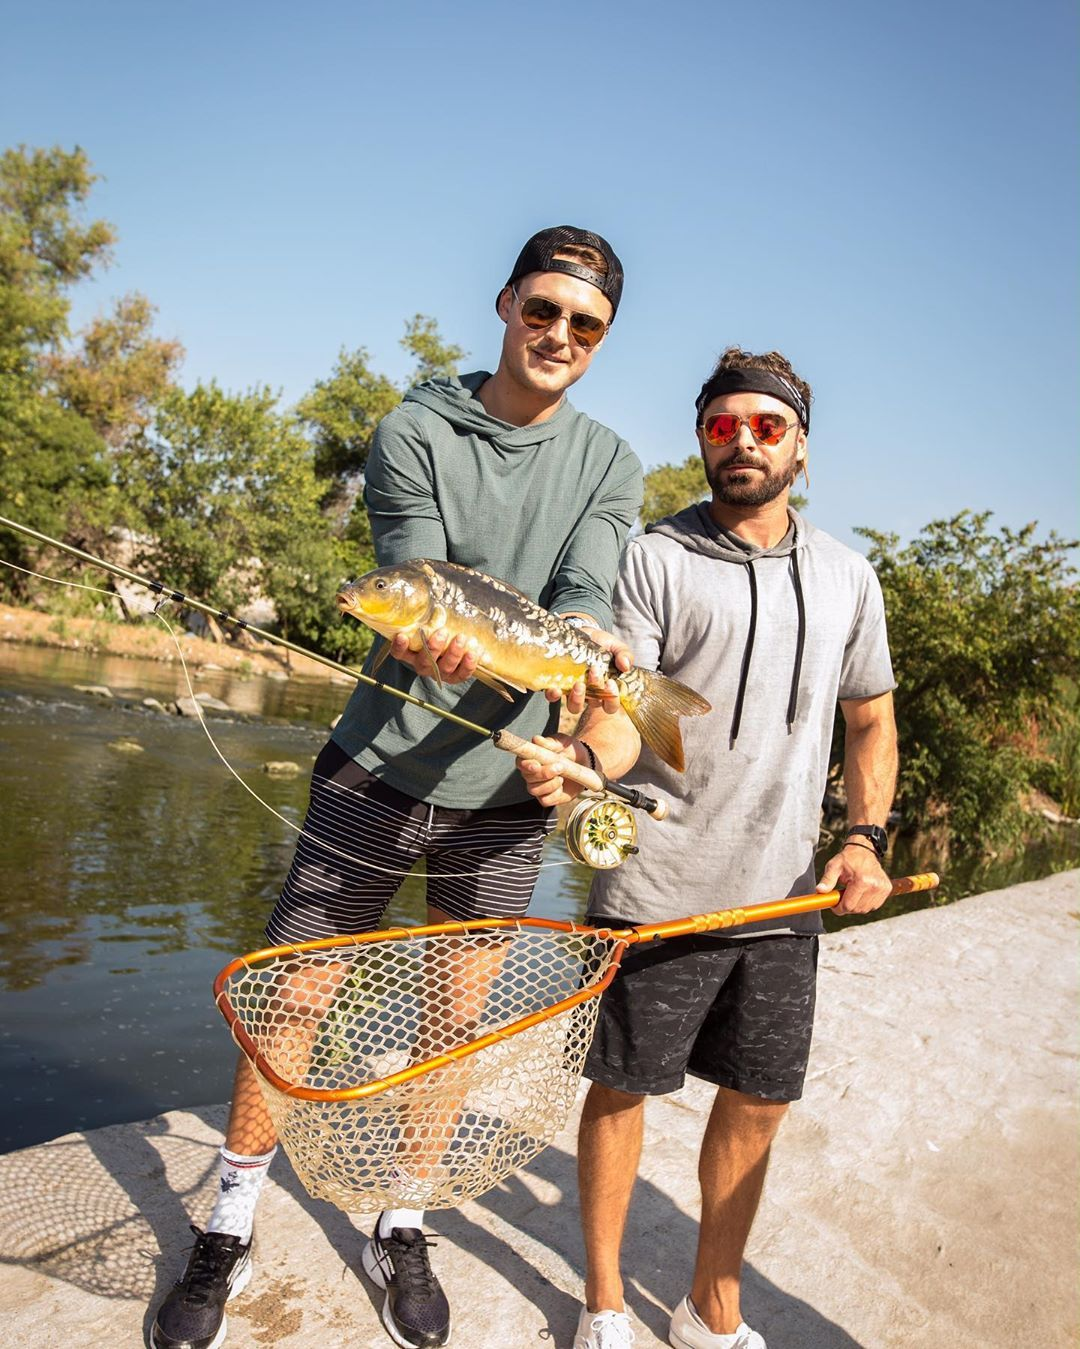 Zac Efron On Instagram Fishing Beside The 5 Freeway In Los Angeles And We Didn T Get Sick After Link In Bio In 2020 Zac Efron Style Zac Efron Zac